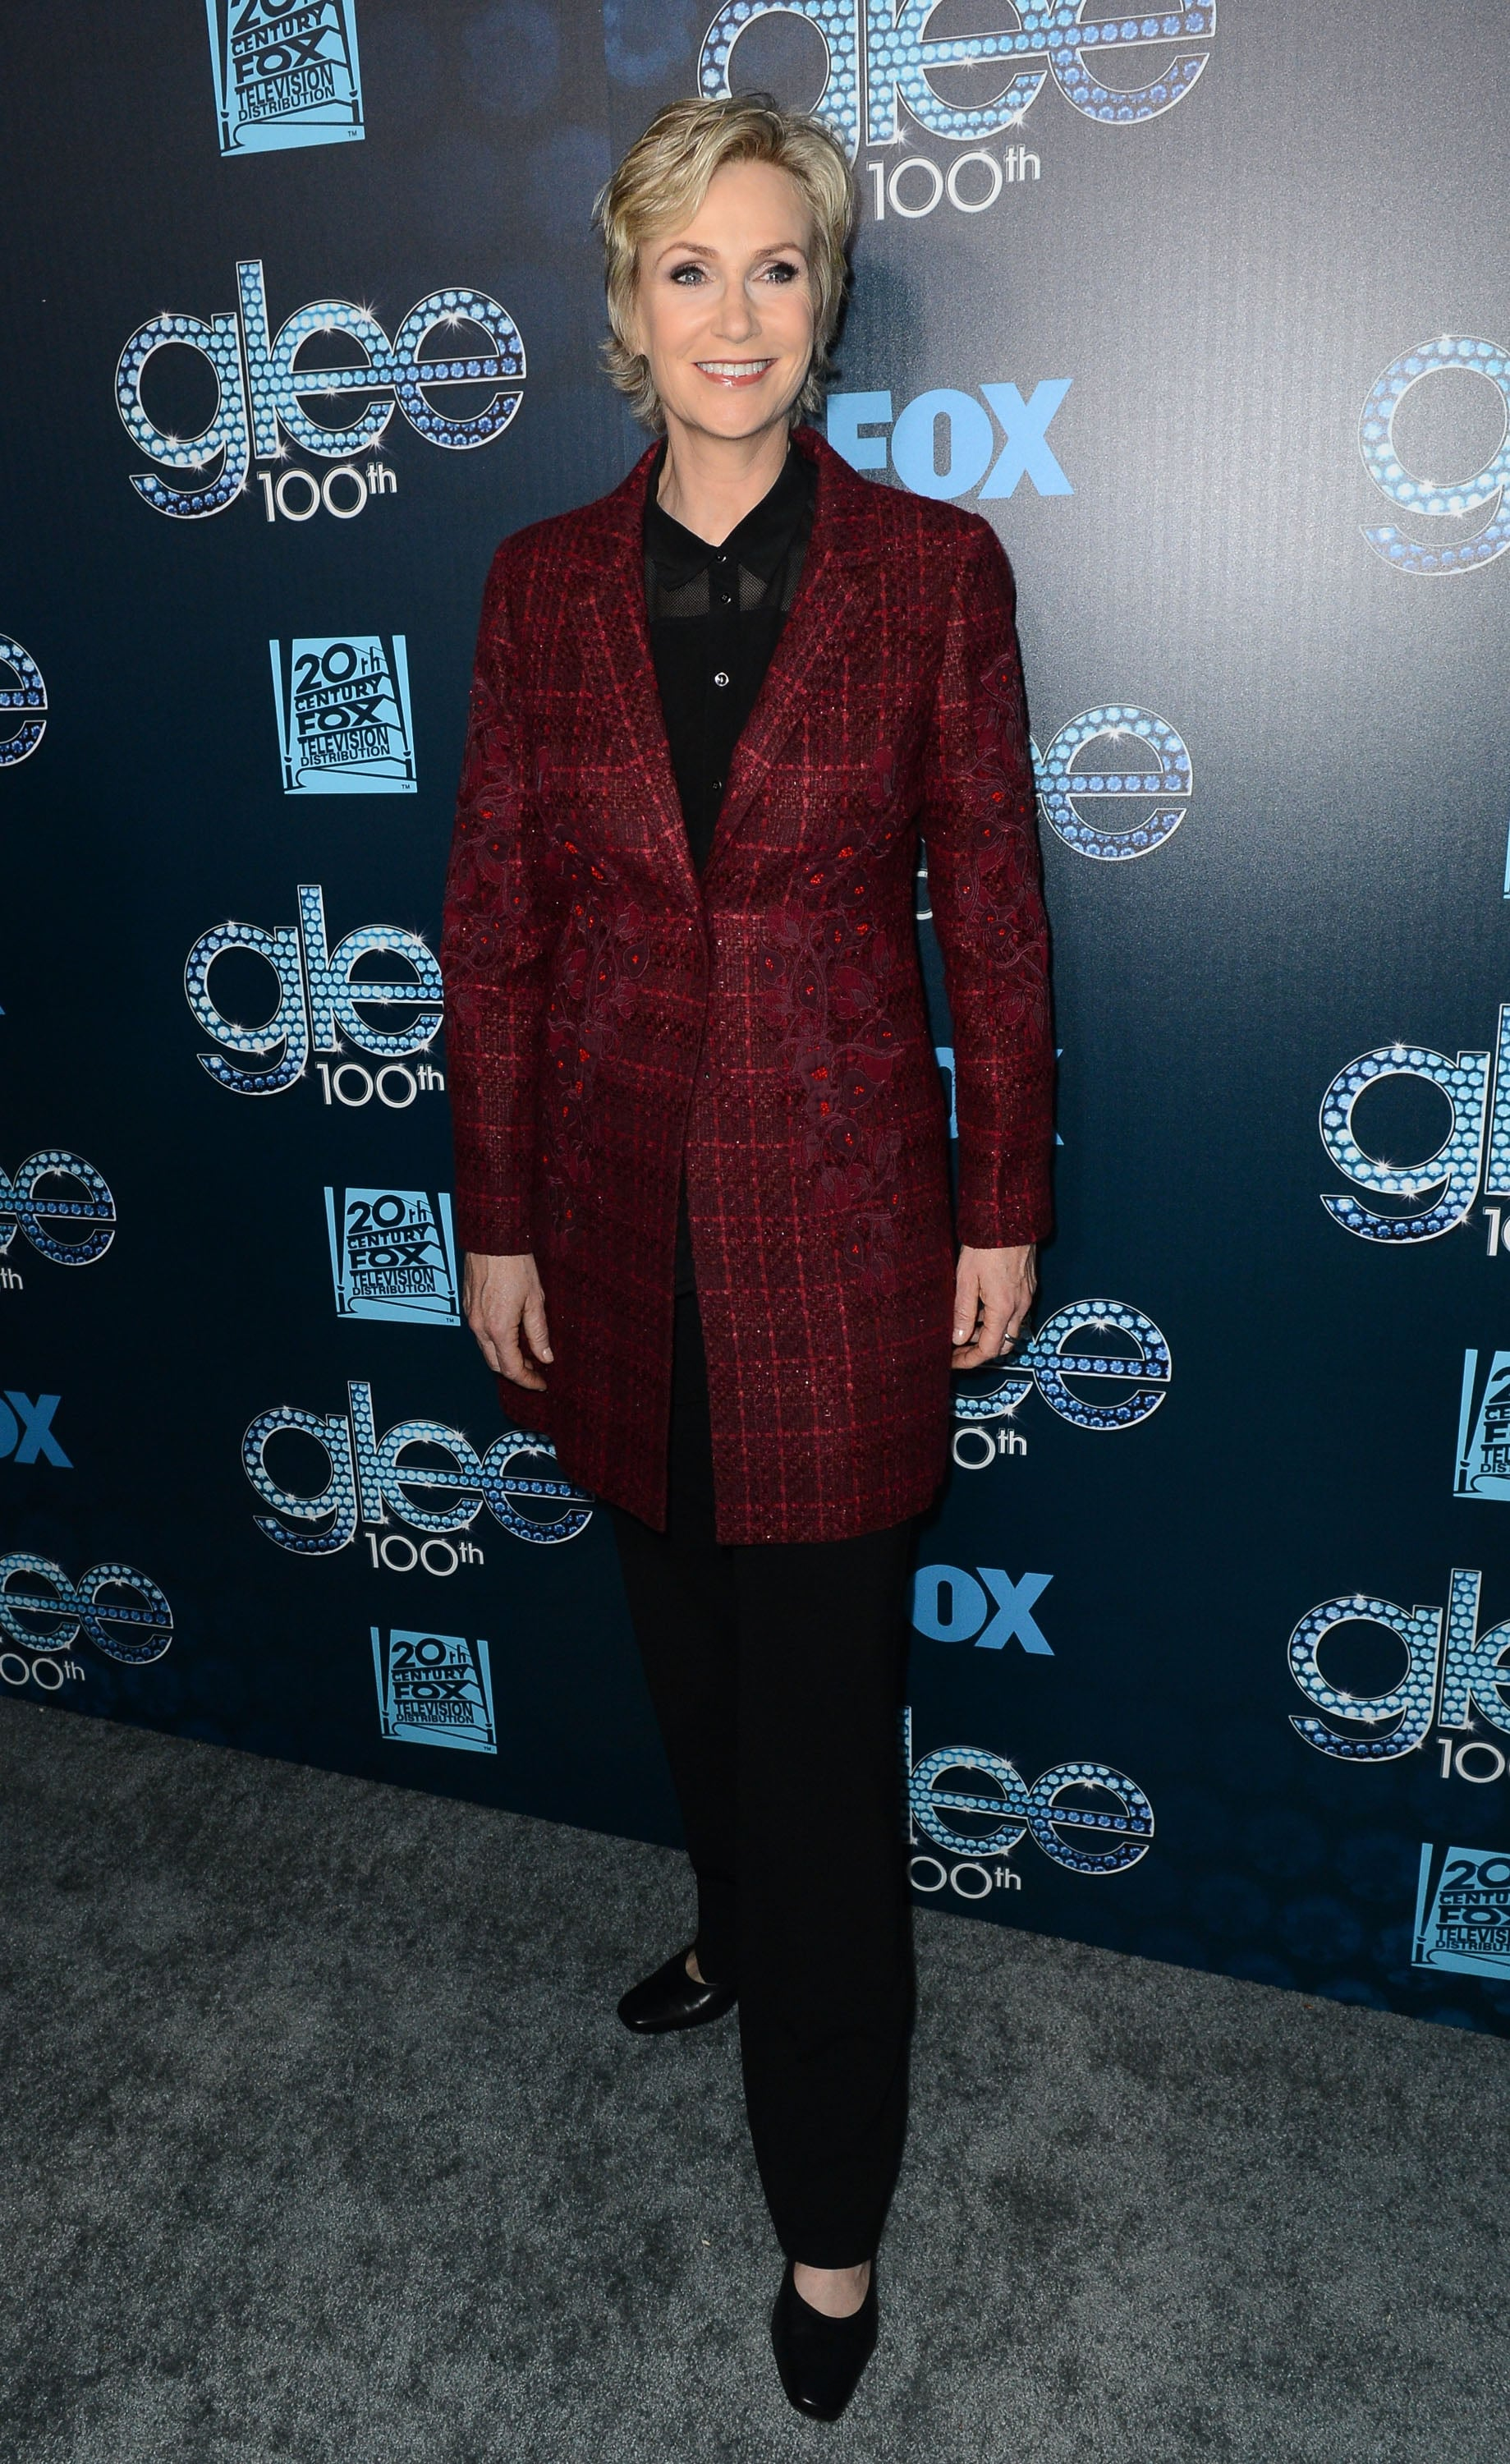 Jane Lynch wore plaid.